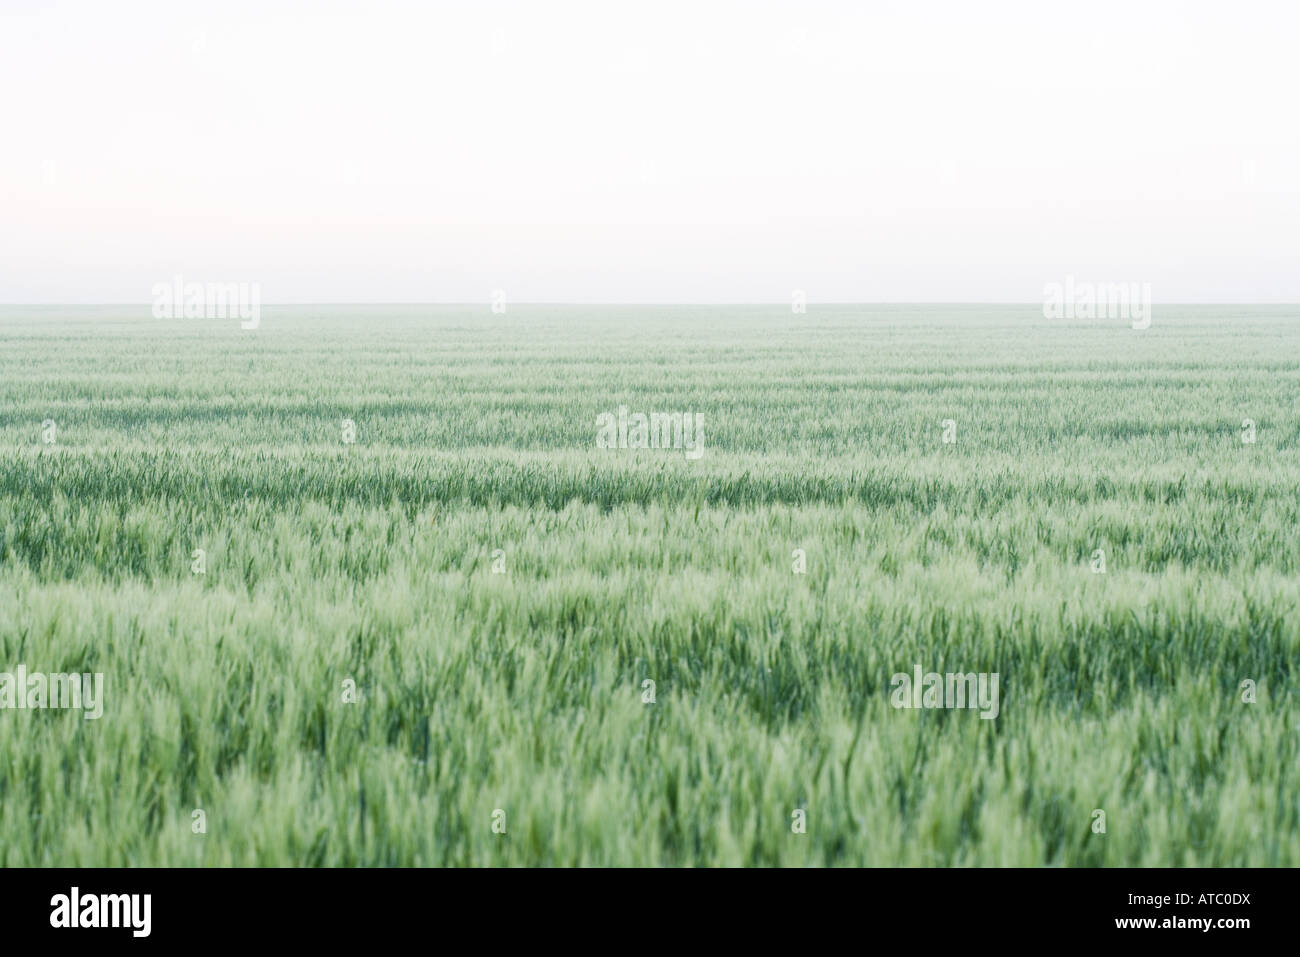 Wheatfield, horizon in background - Stock Image